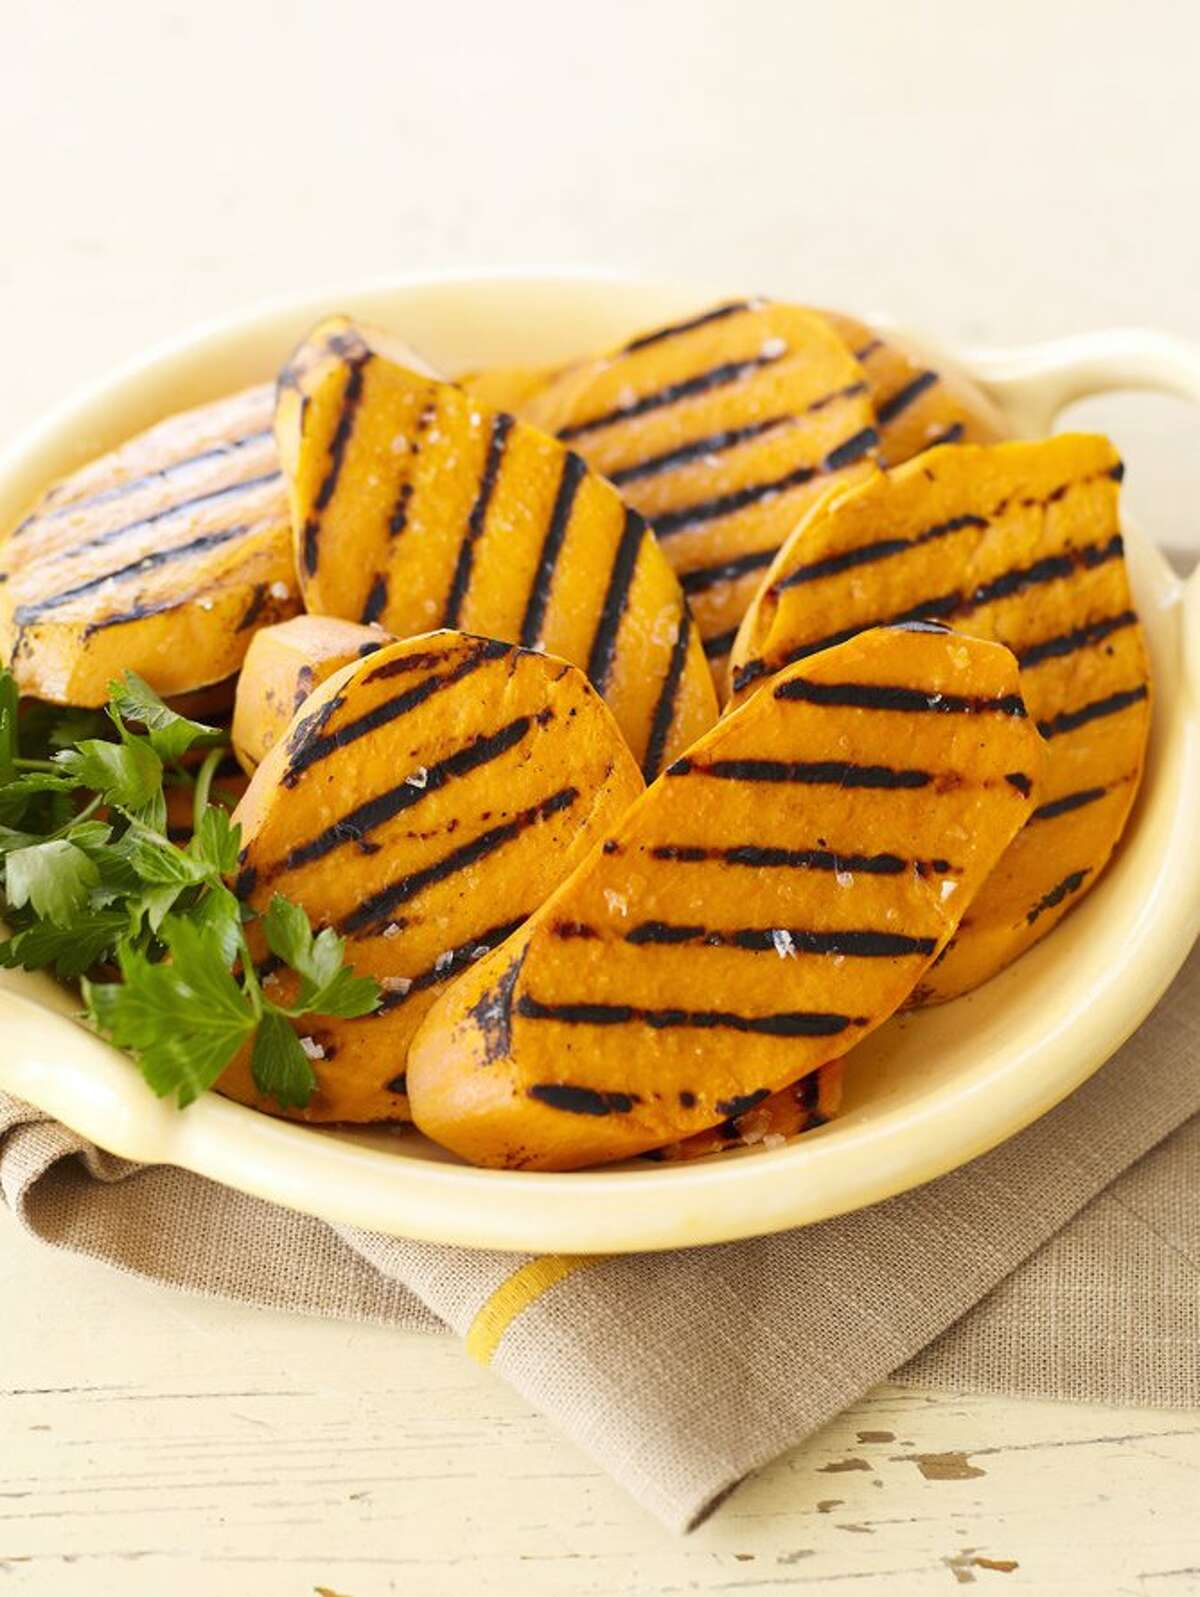 Good Housekeeping recipe for Grilled Sweet Potatoes.